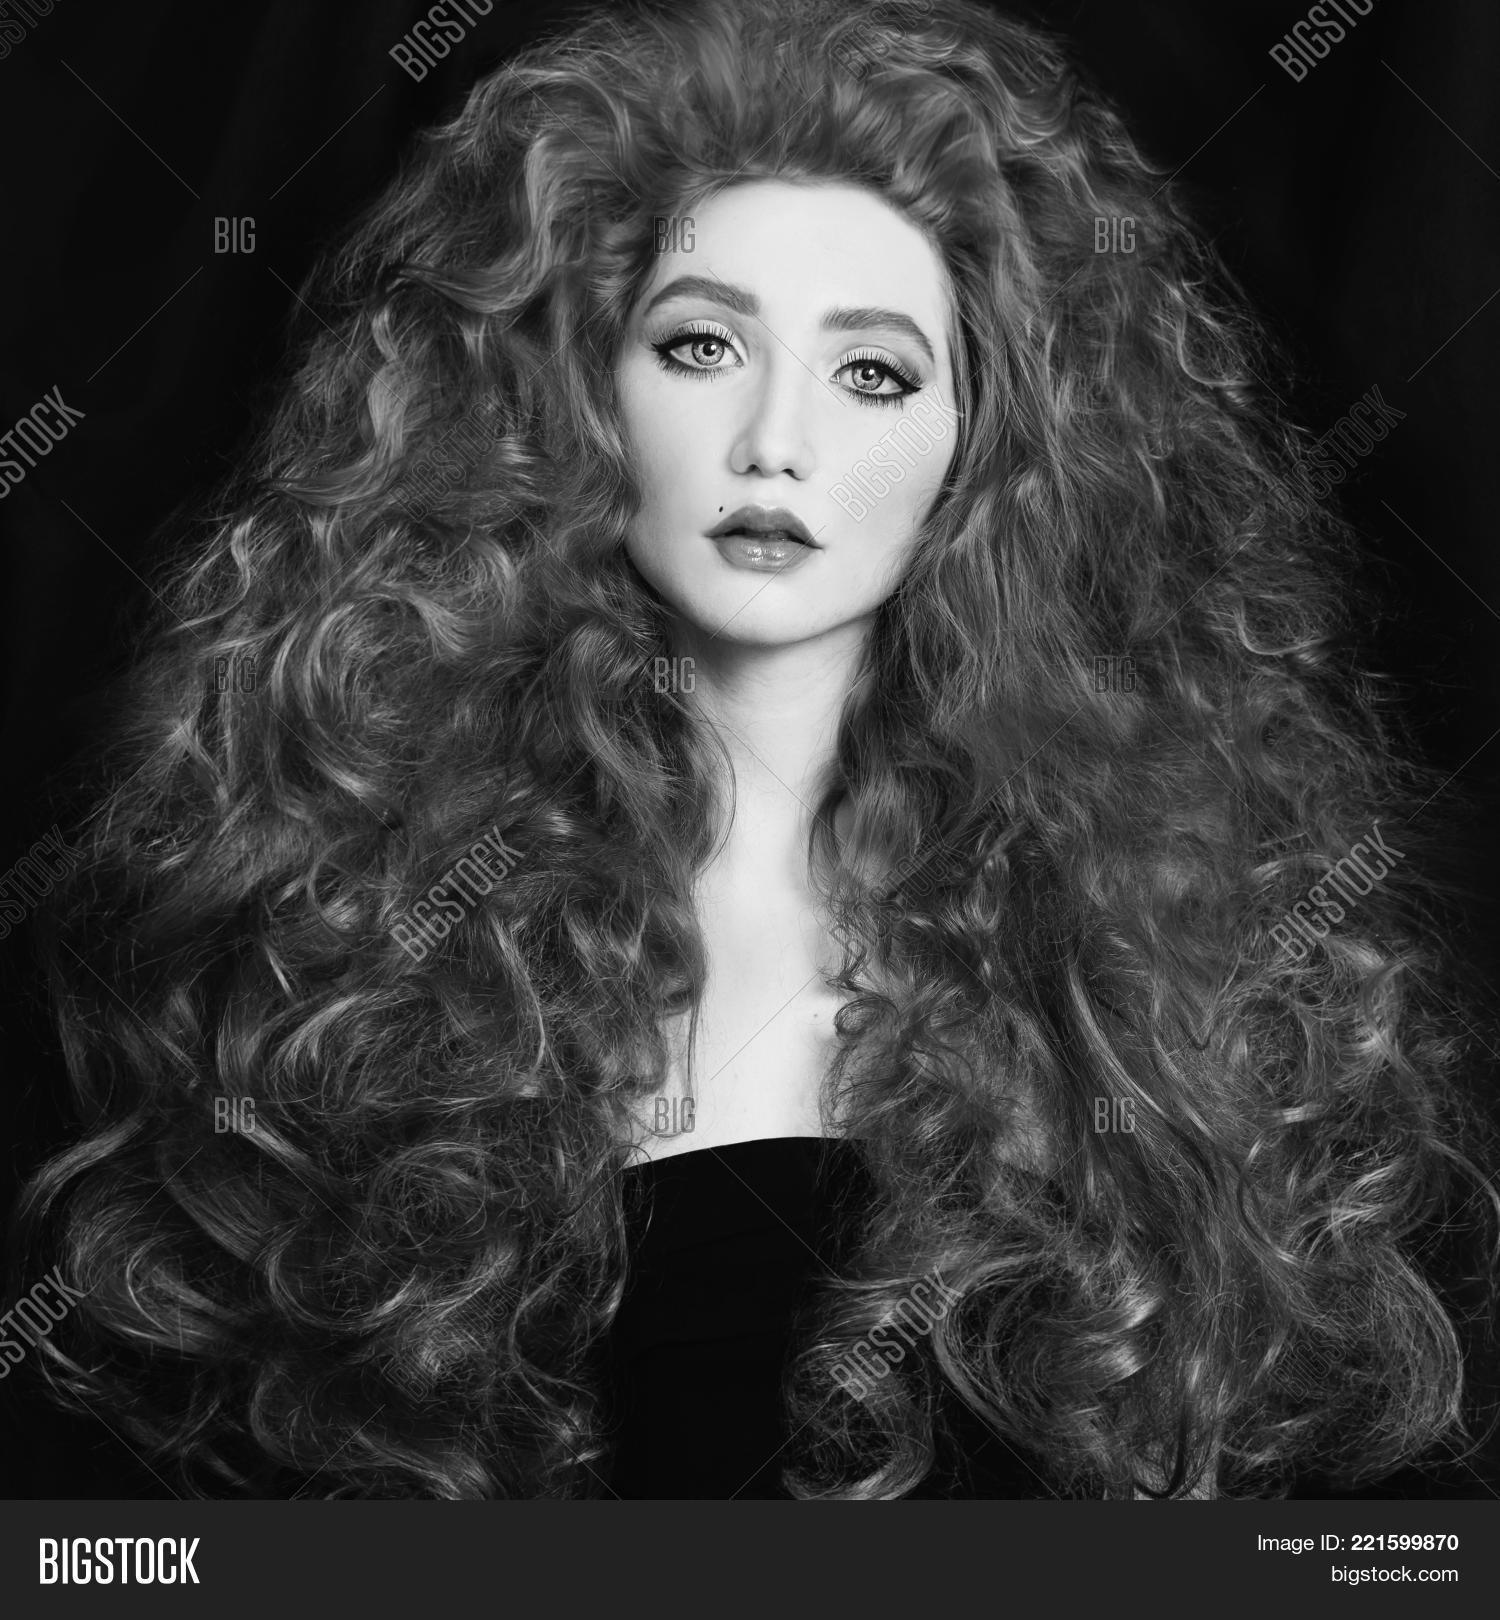 Black and white art monochrome photography woman with very long curly hair black and